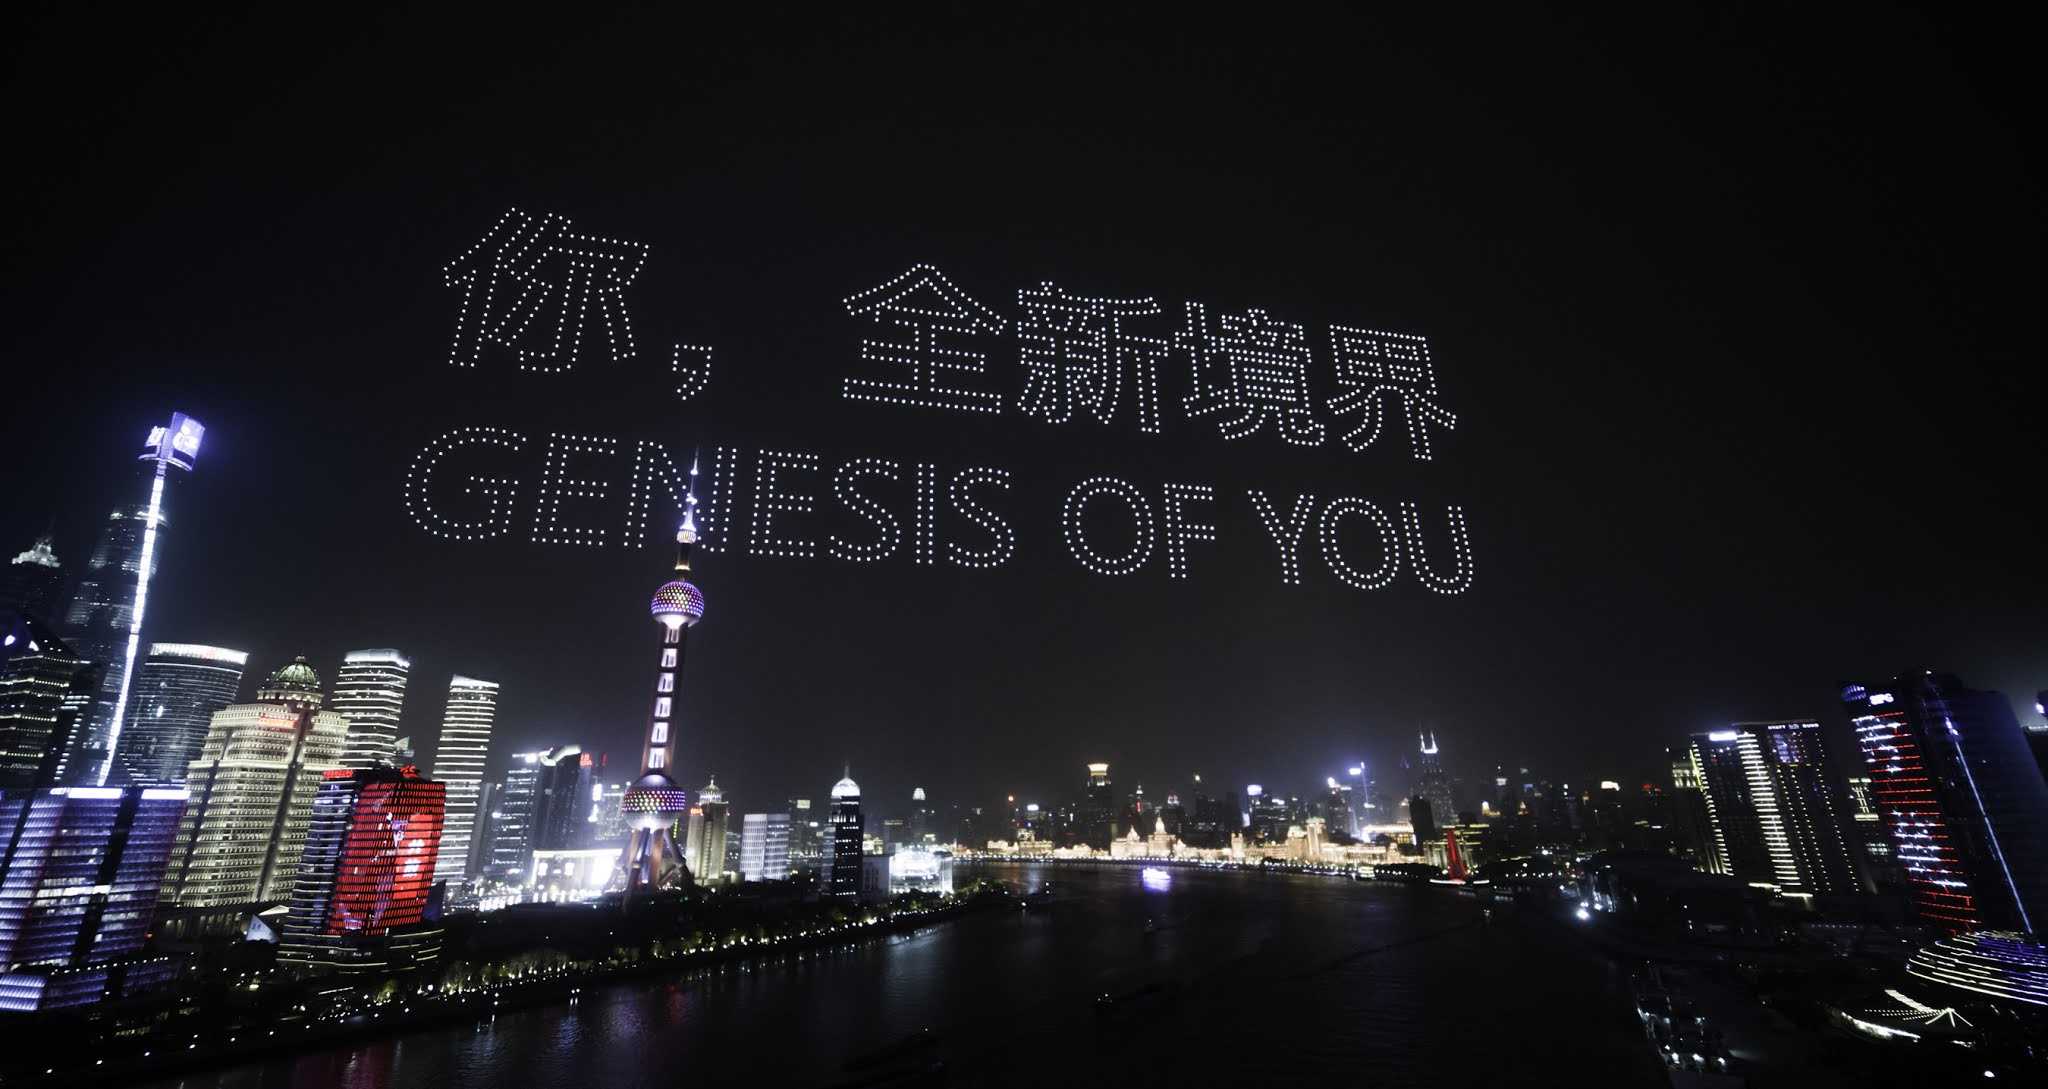 Genesis opens in China for consumers seeking distinction in luxury